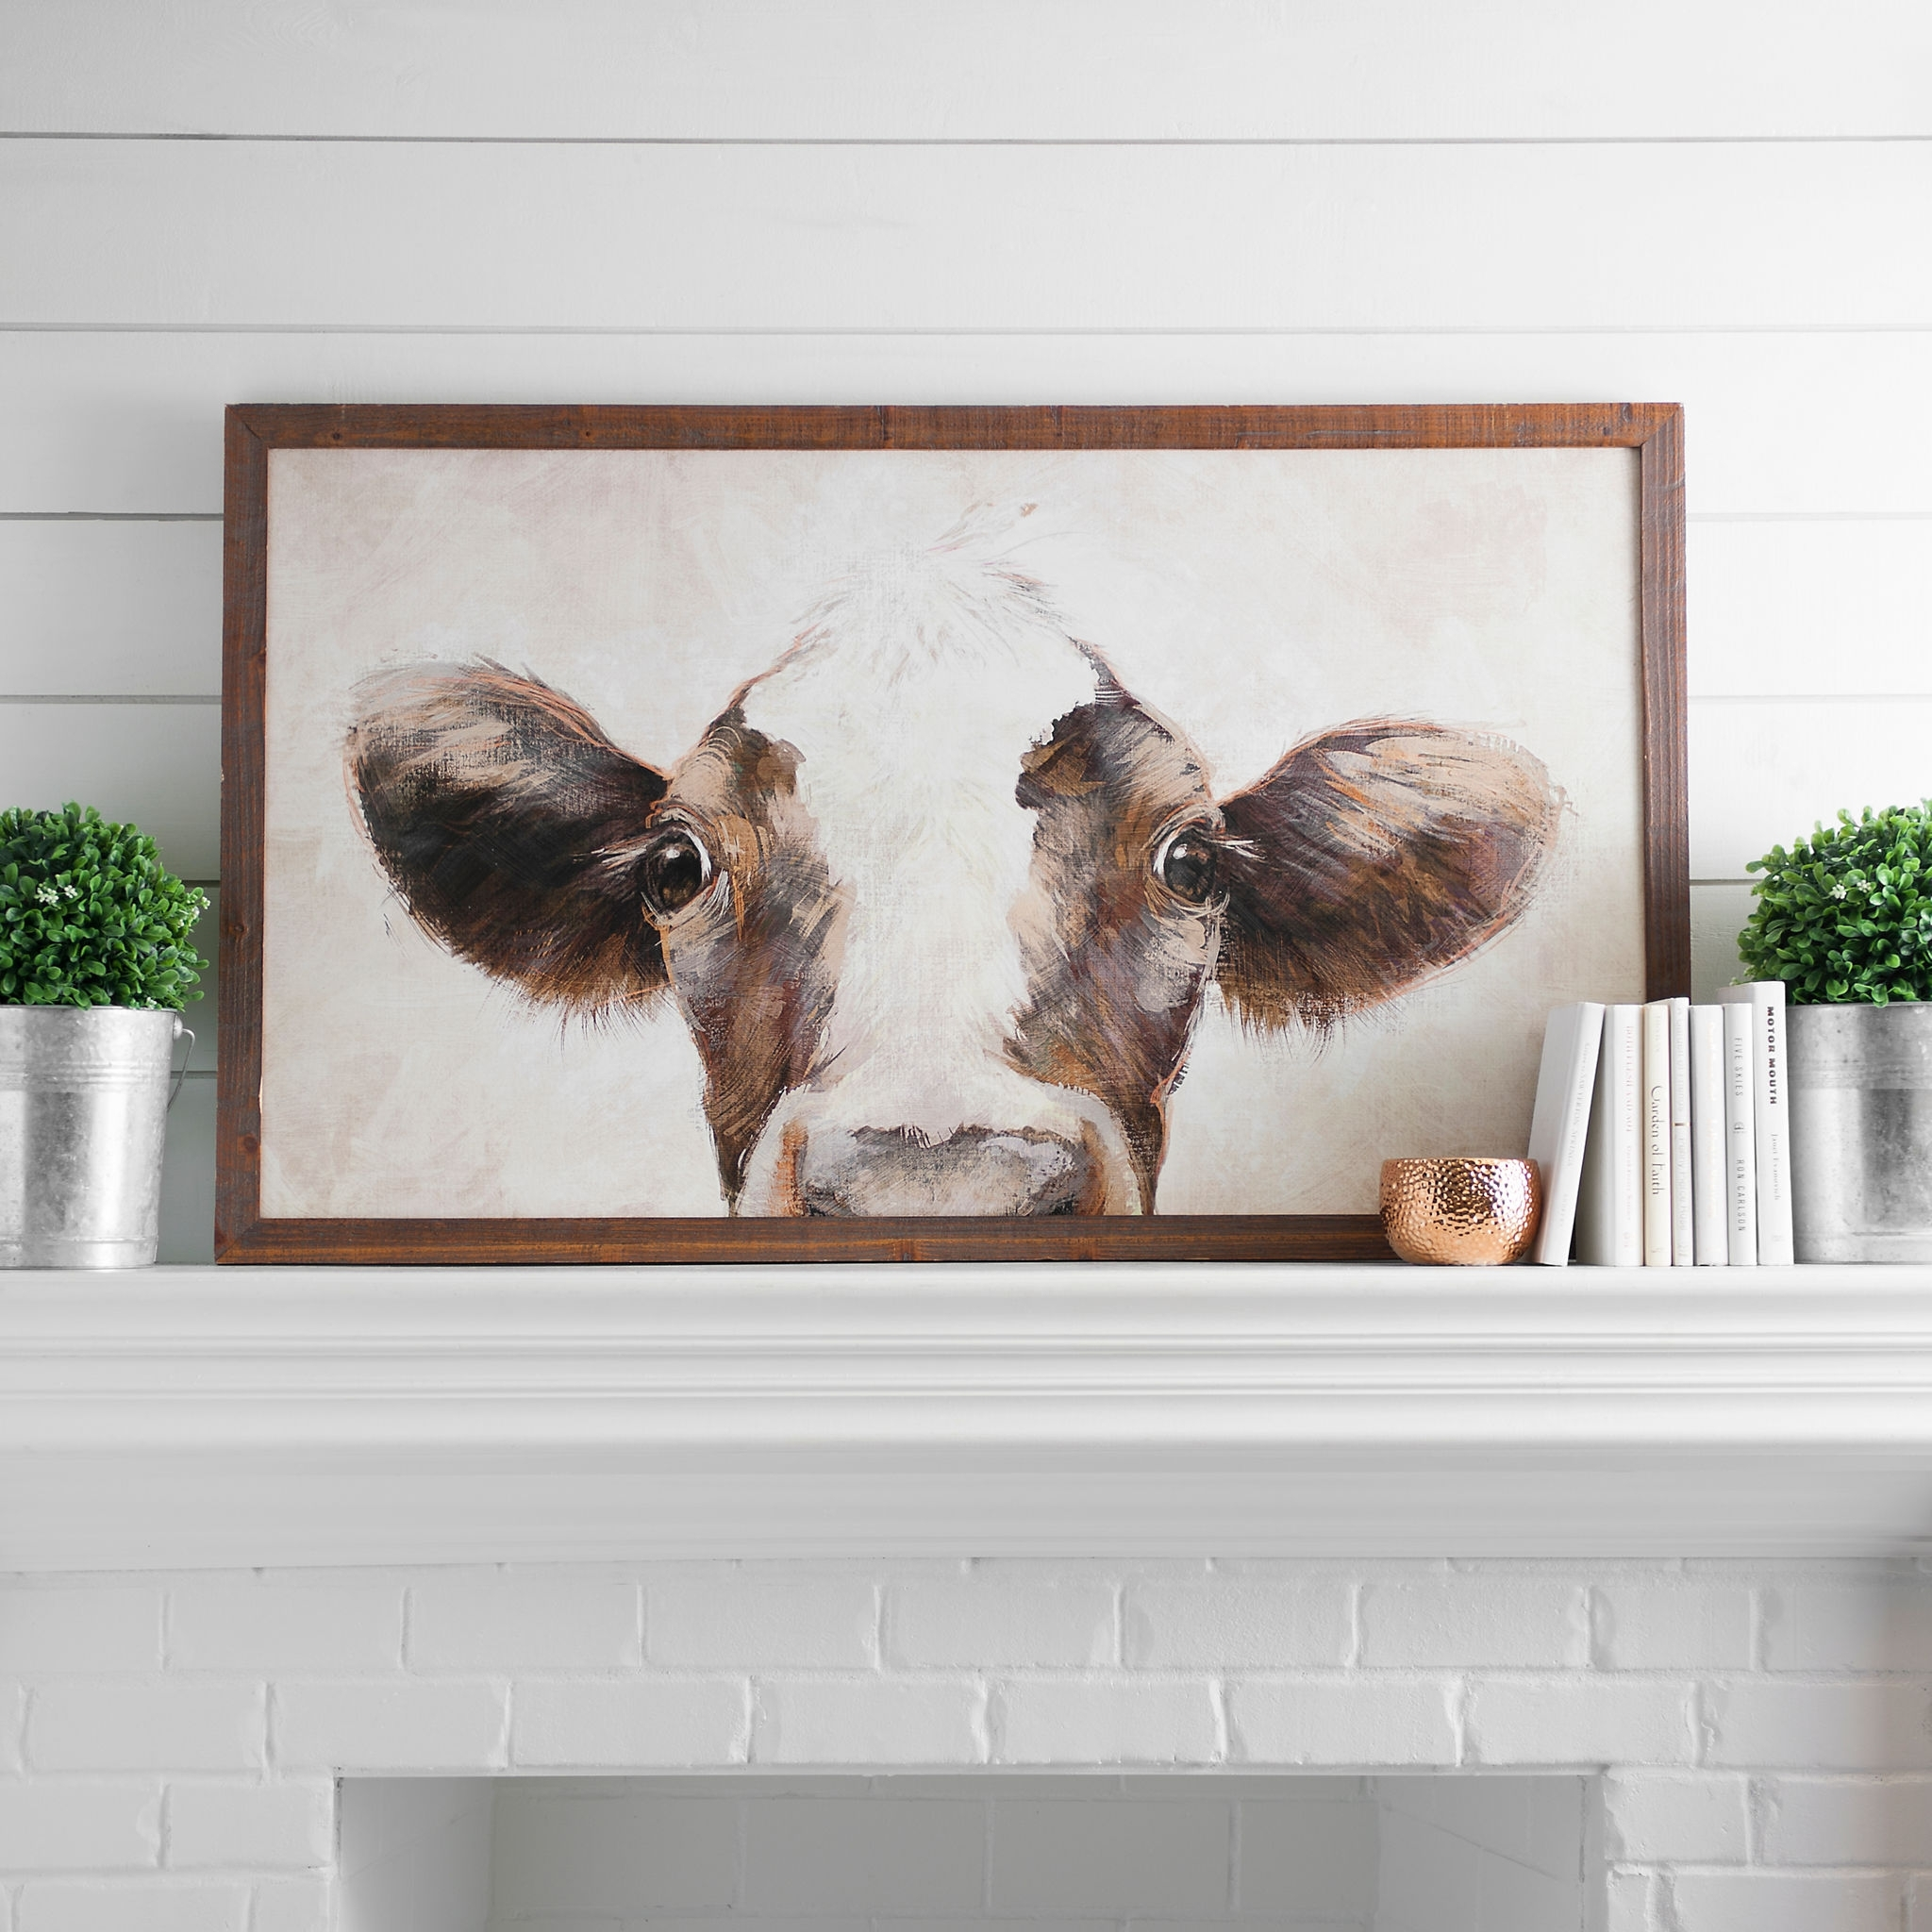 View Photos of Framed Animal Art Prints (Showing 14 of 15 Photos)